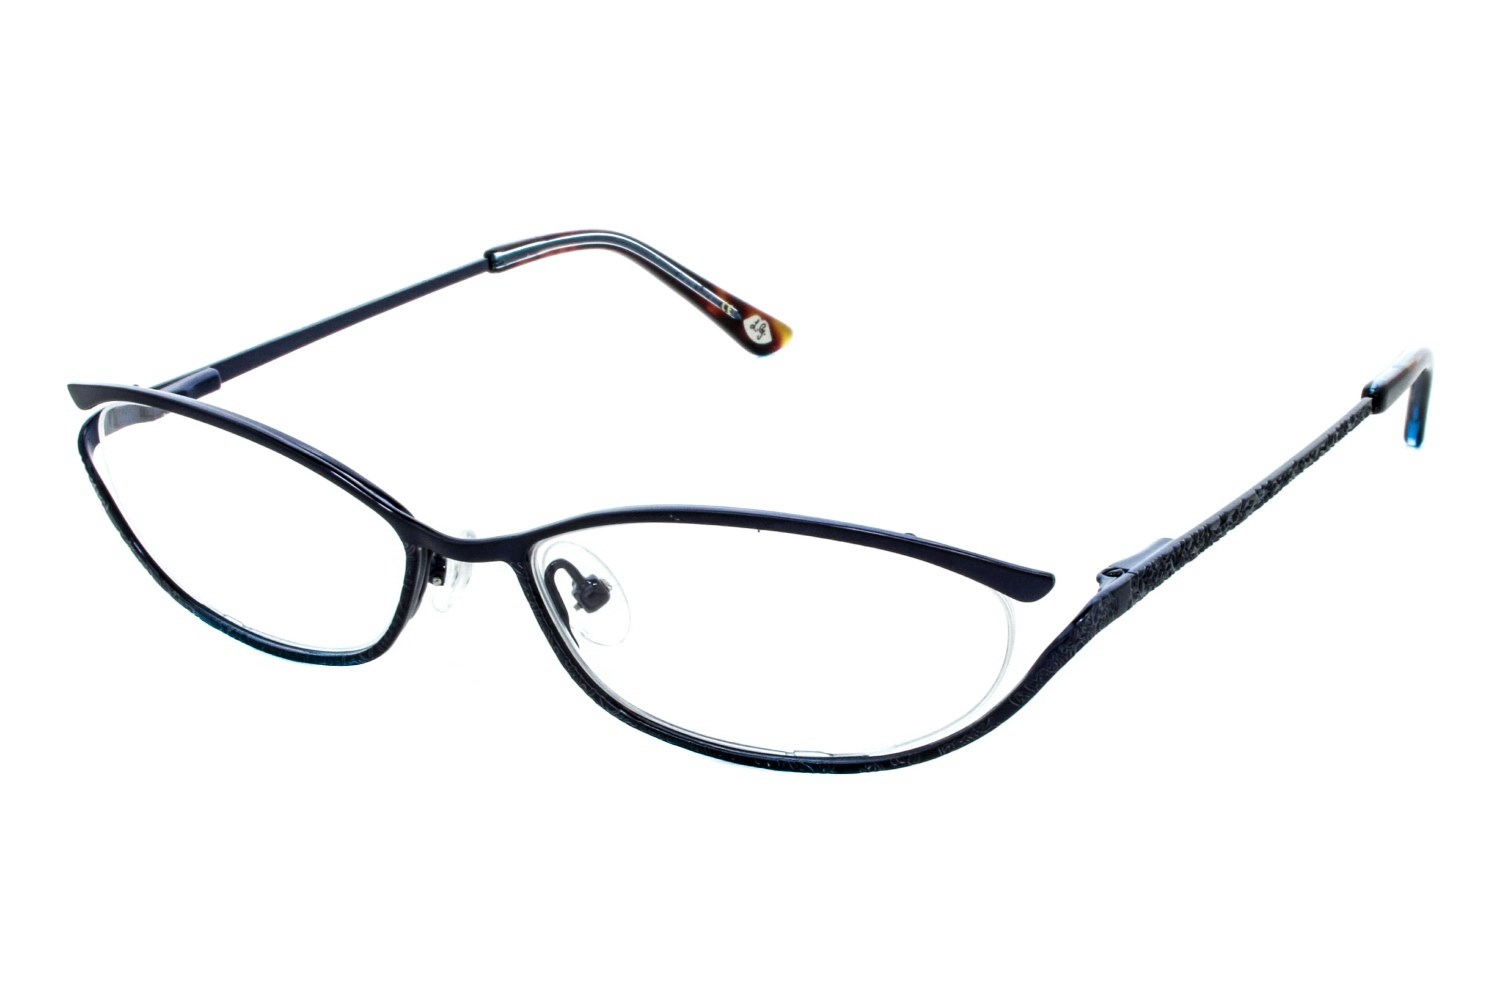 lulu-guinness-l748-prescription-eyeglasses